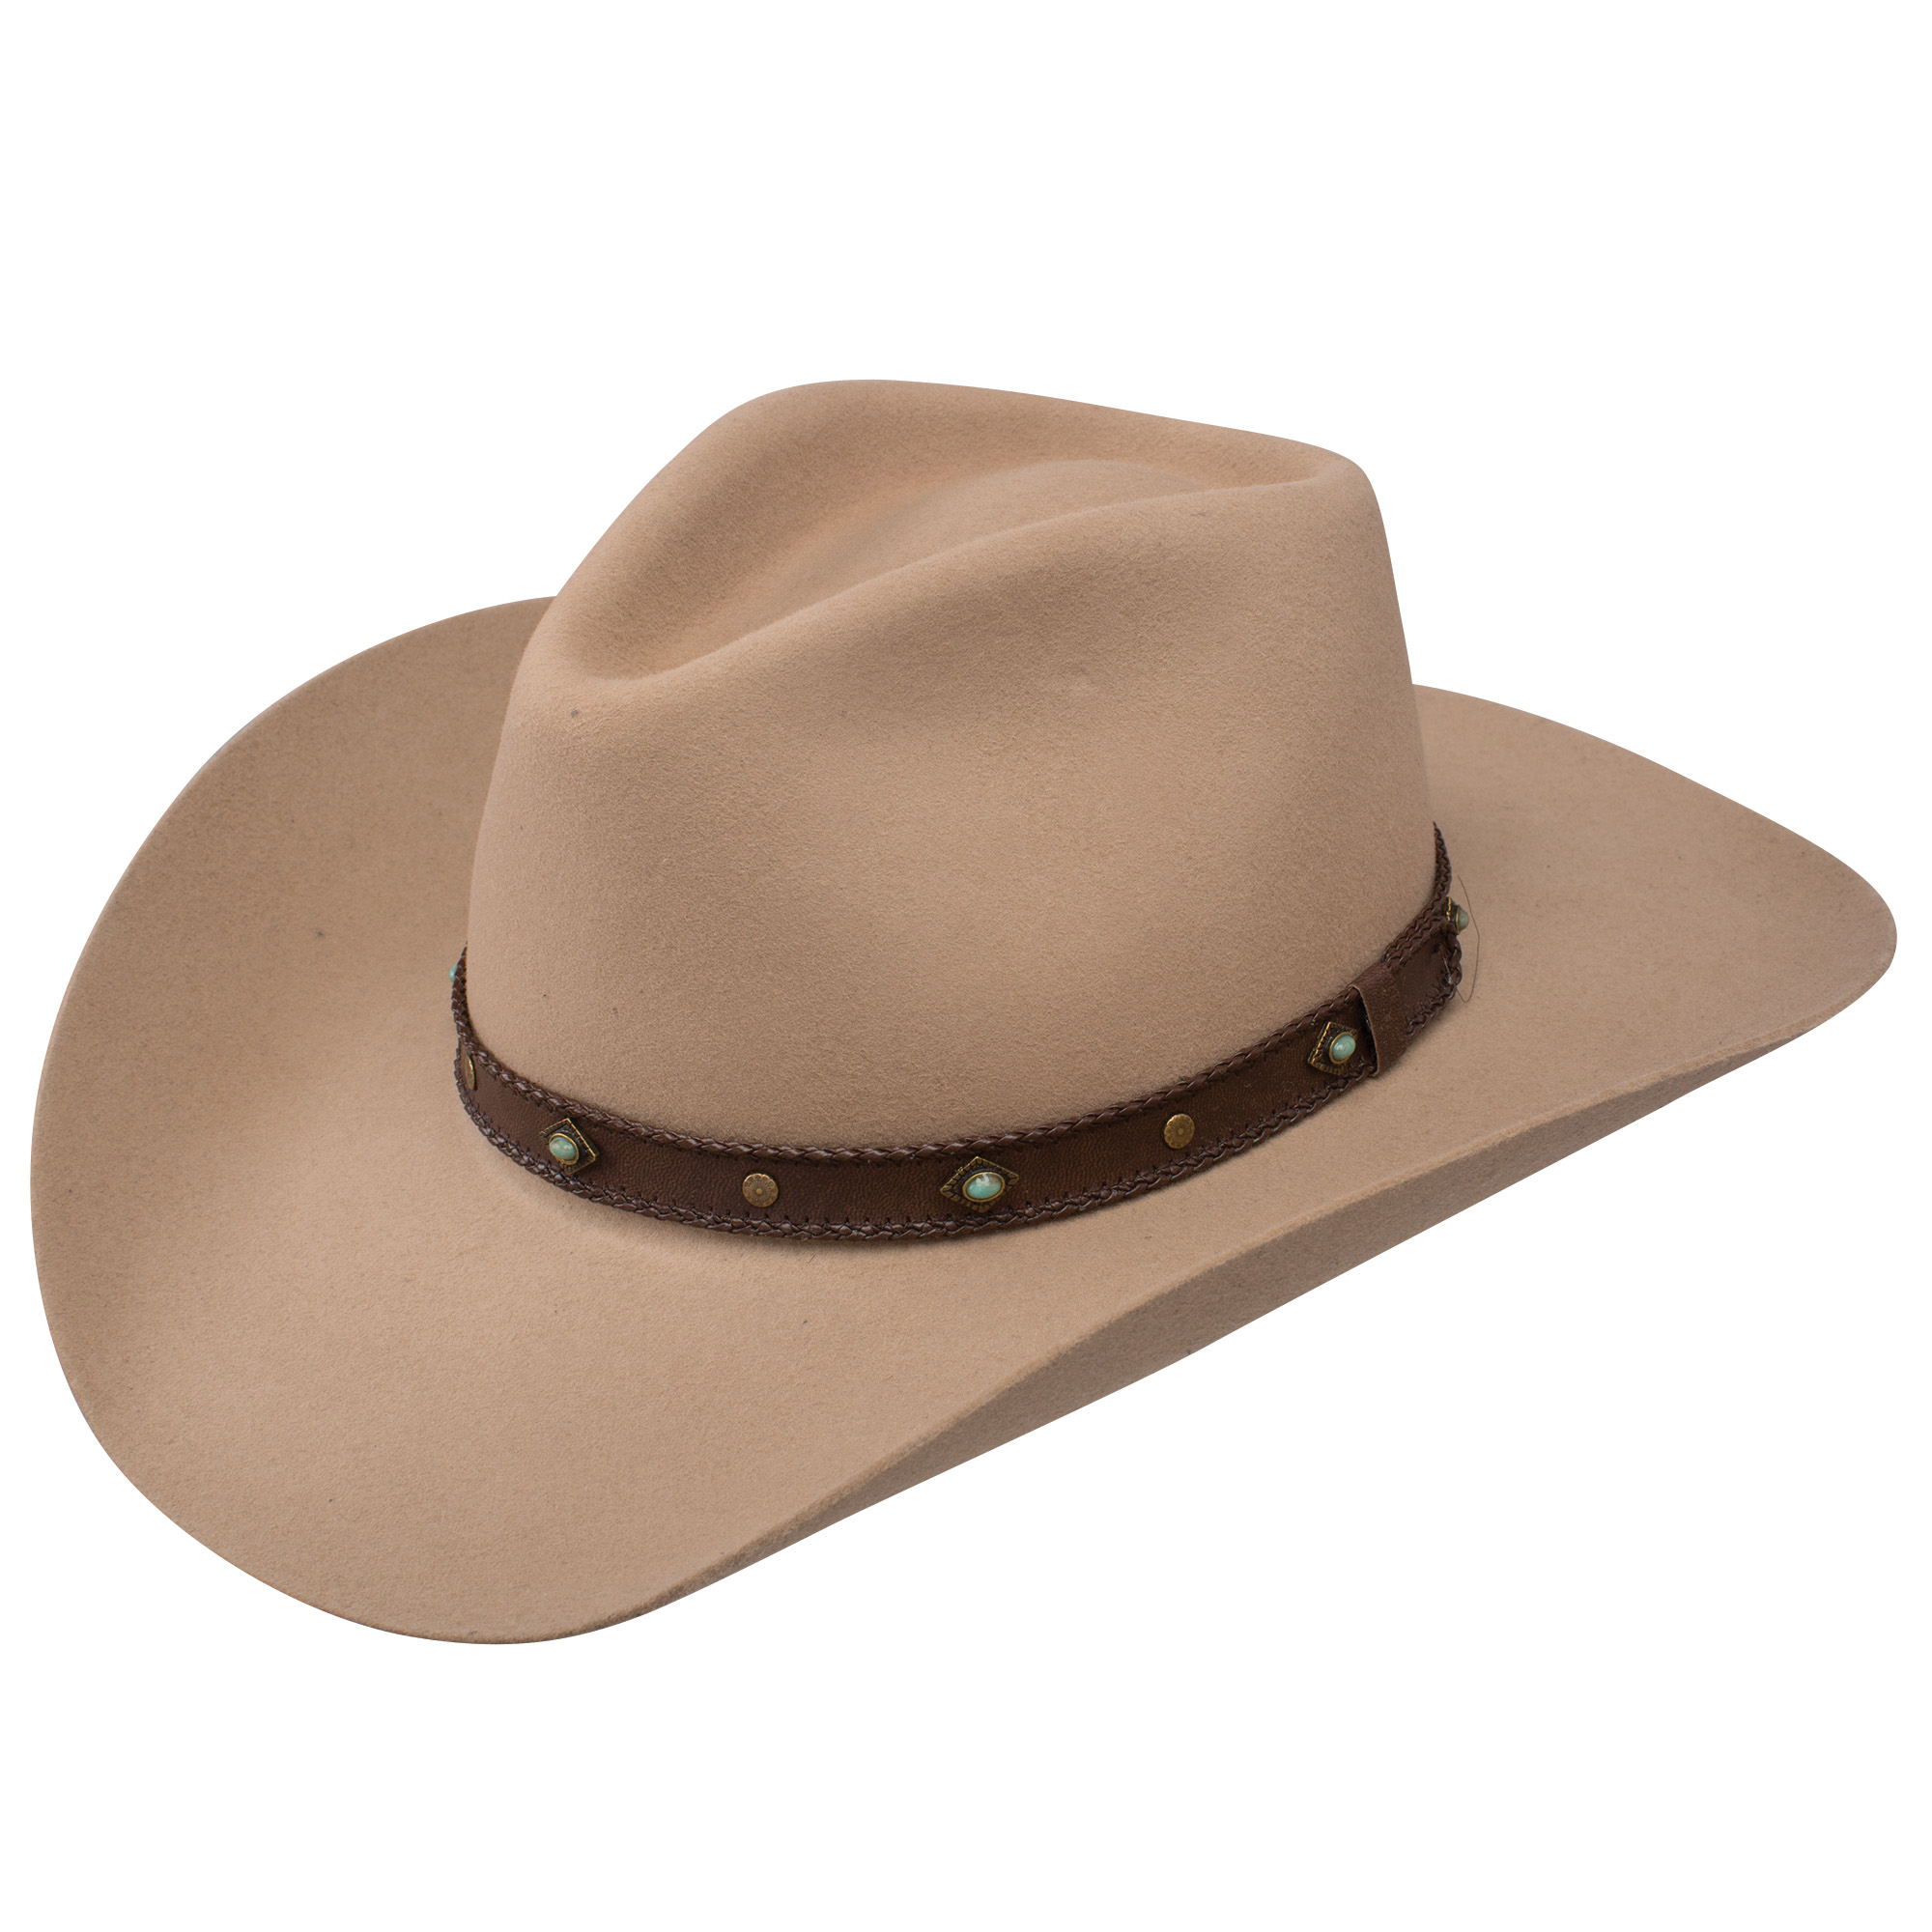 Pungo Ridge - Stetson 41 Sunset Ride 4X Buffalo Fur Hat - Tan ... 3380e785717